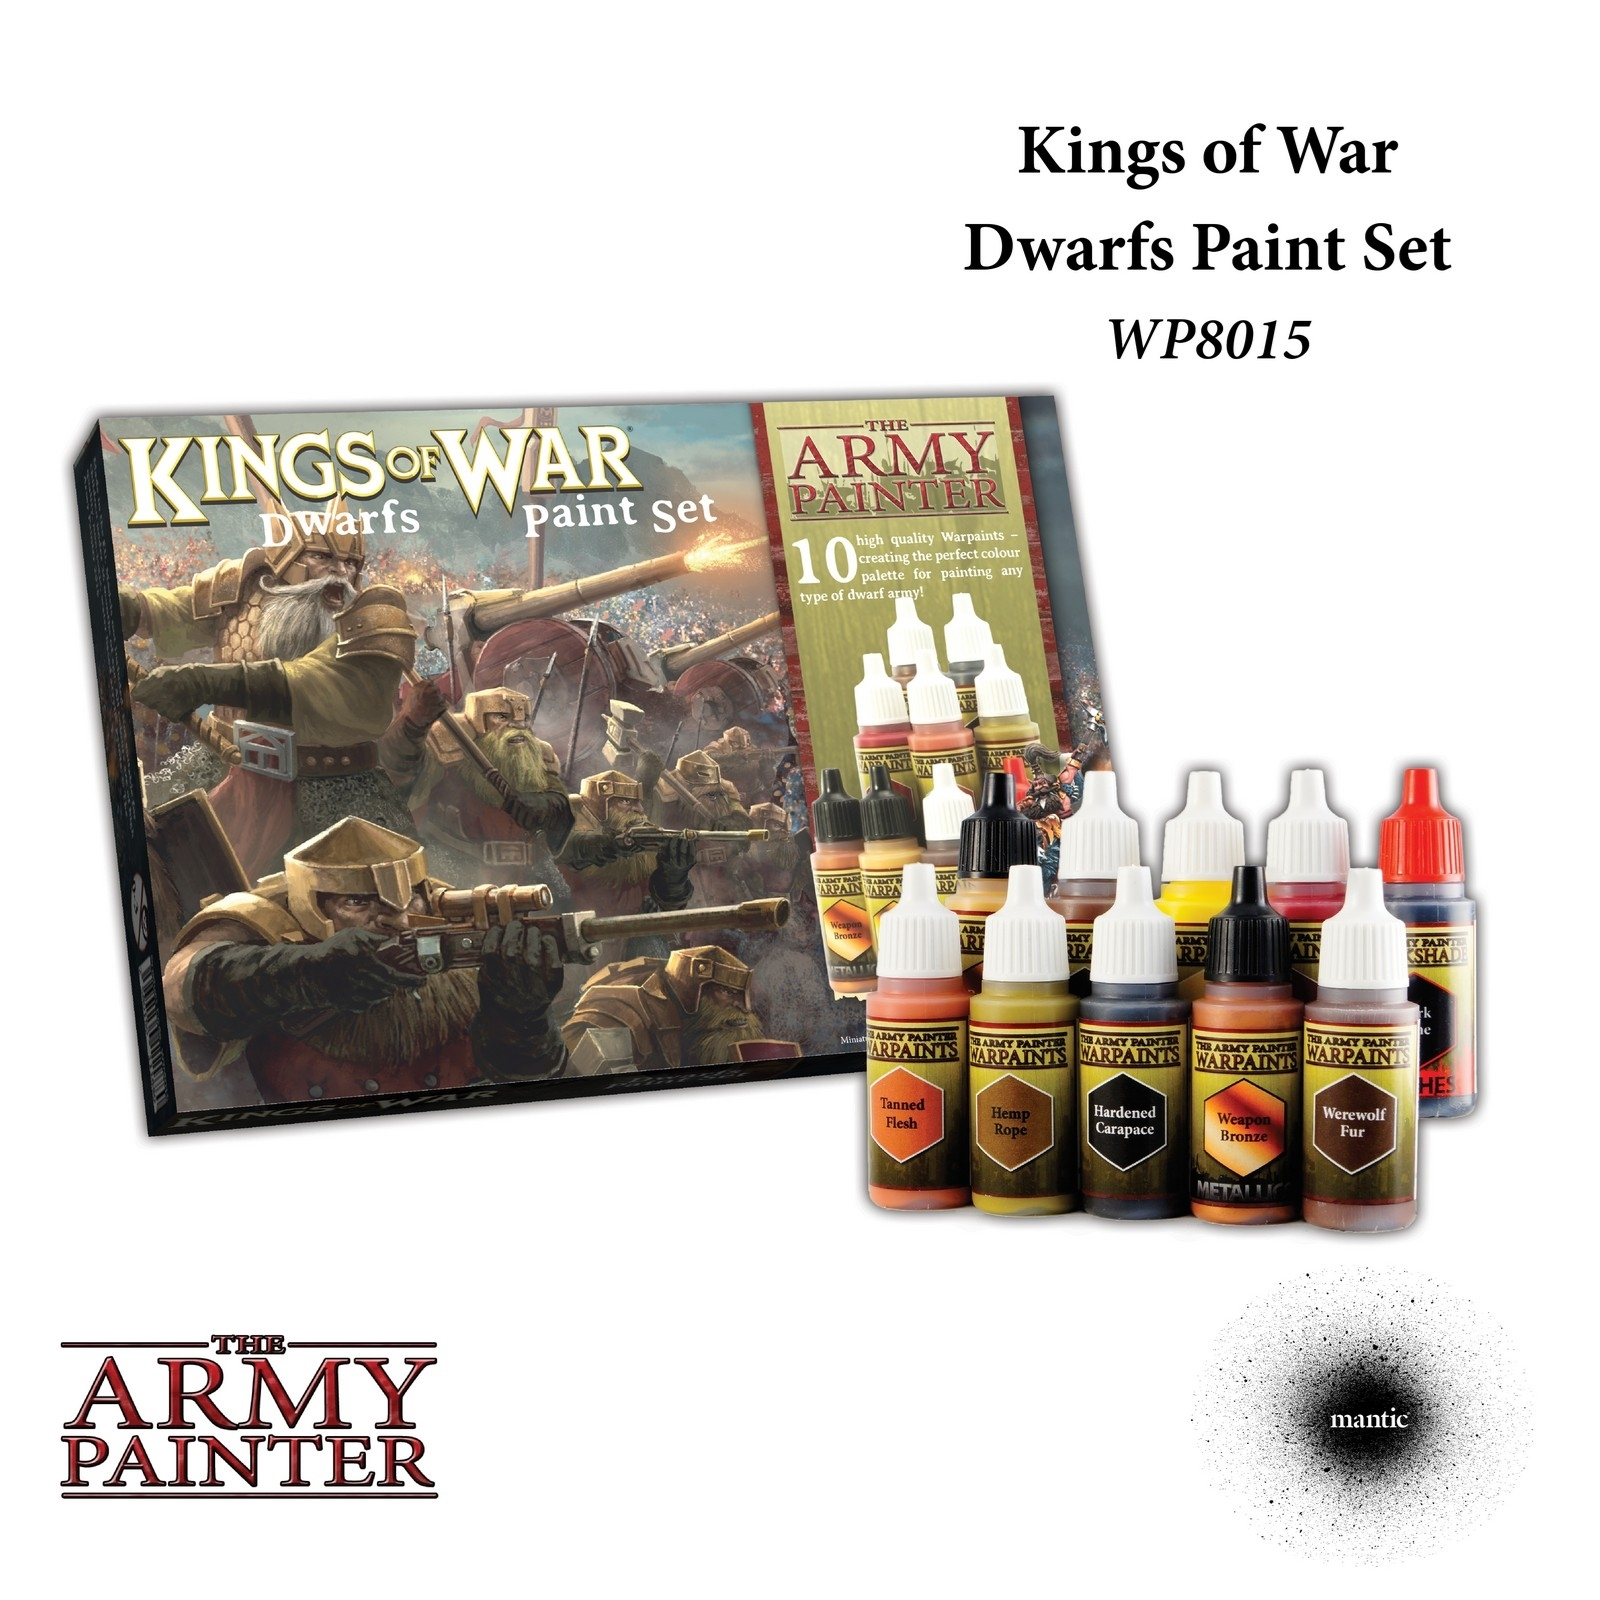 Kings of War: Dwarfs Paint Set